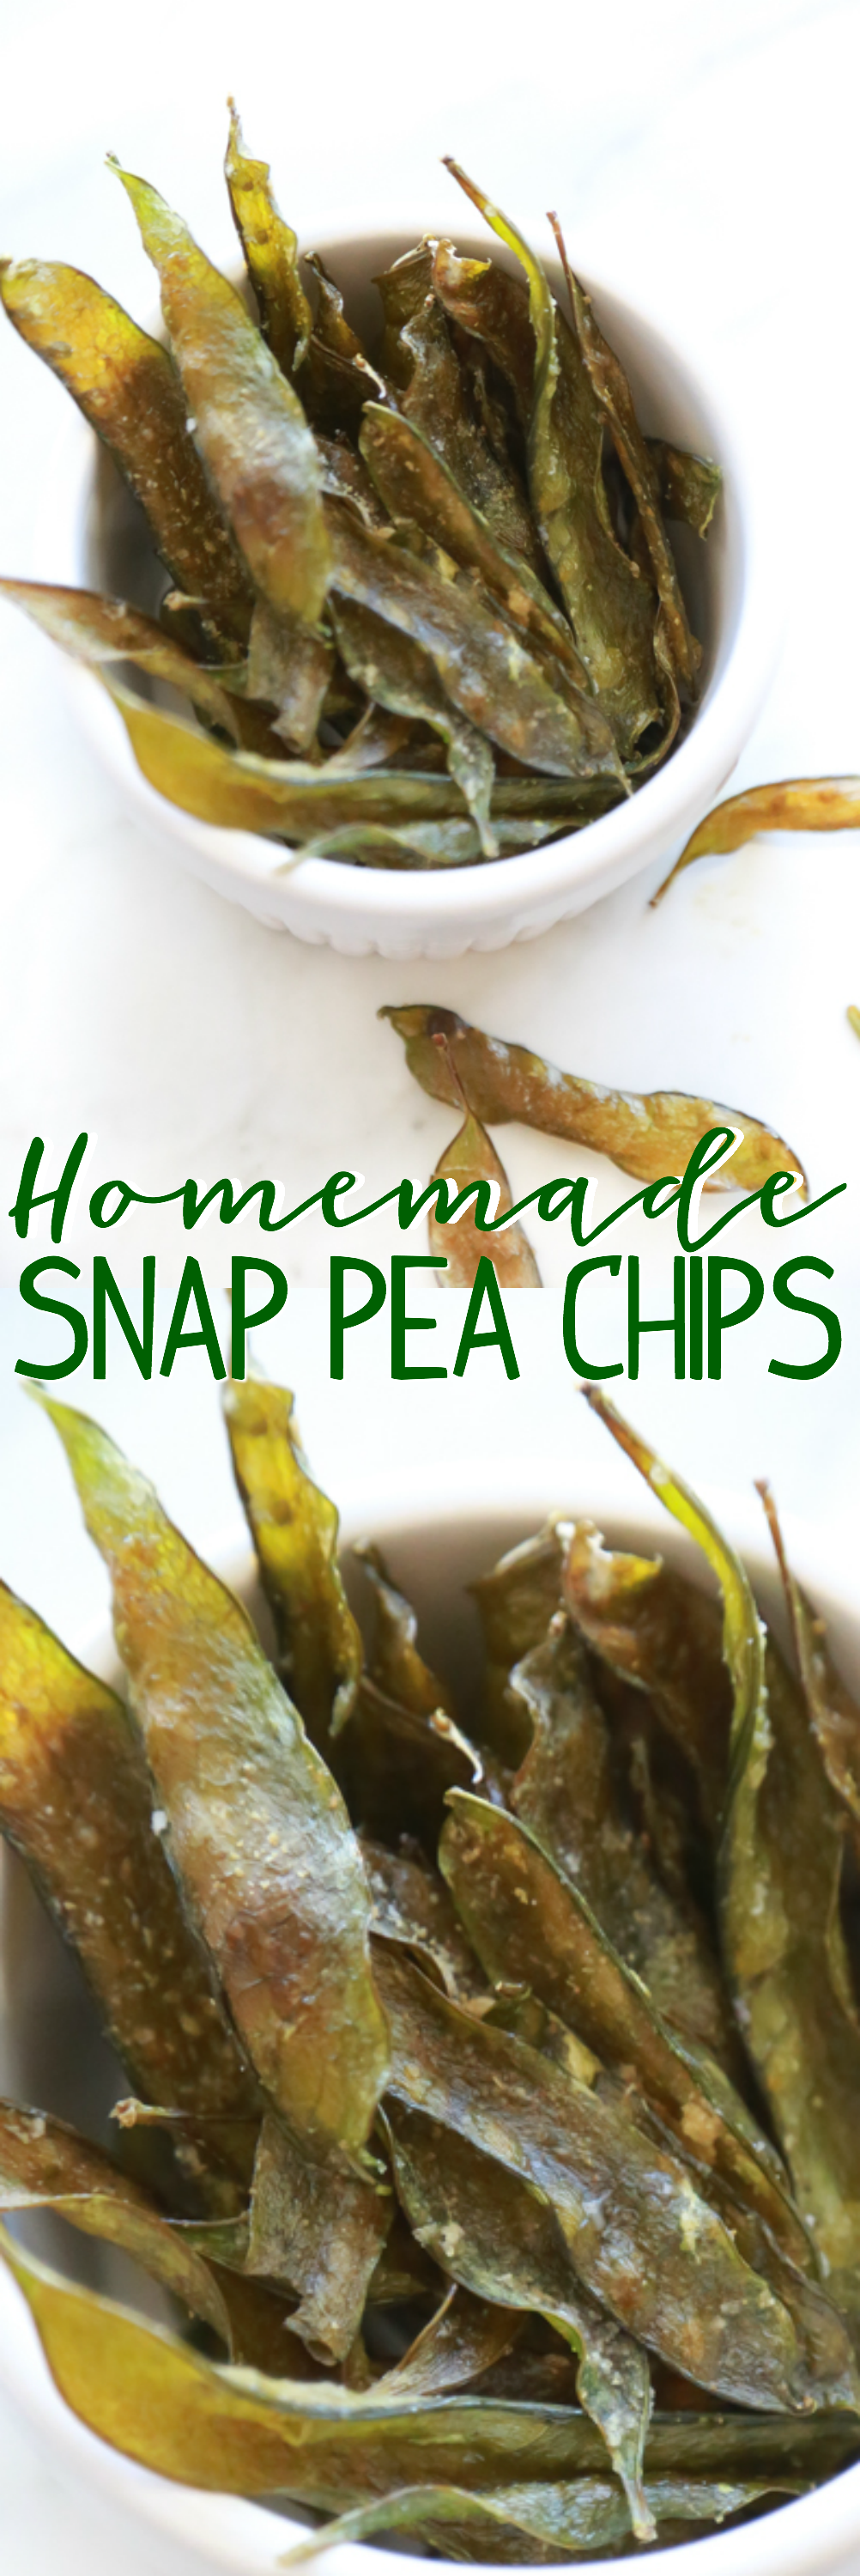 "Using fresh, organic snap peas, you can make the most delectable batch of ""chips"" you've ever had. Learn how to make these Homemade Snap Pea Chips in under a minute with this video."